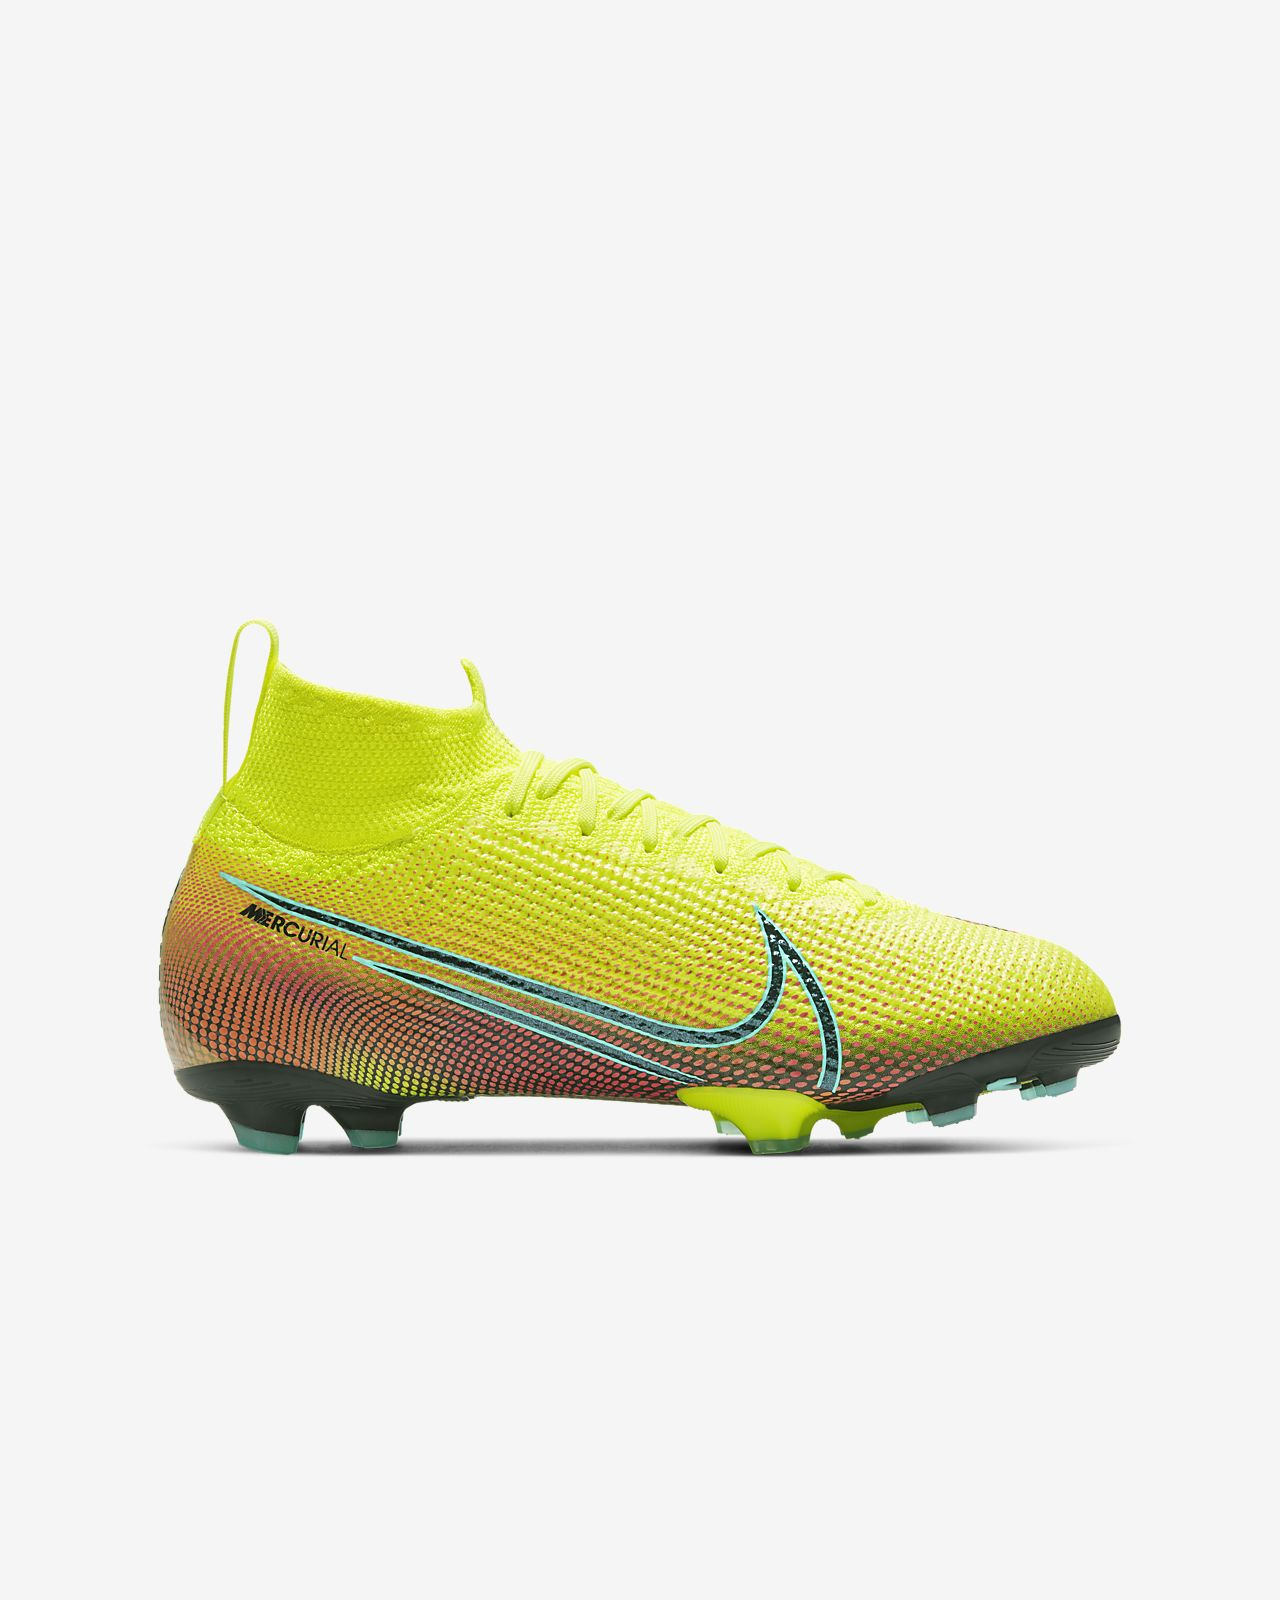 Nike Mercurial Superfly VI 360 Elite FG Fotbollsskor Barn Svart Orange